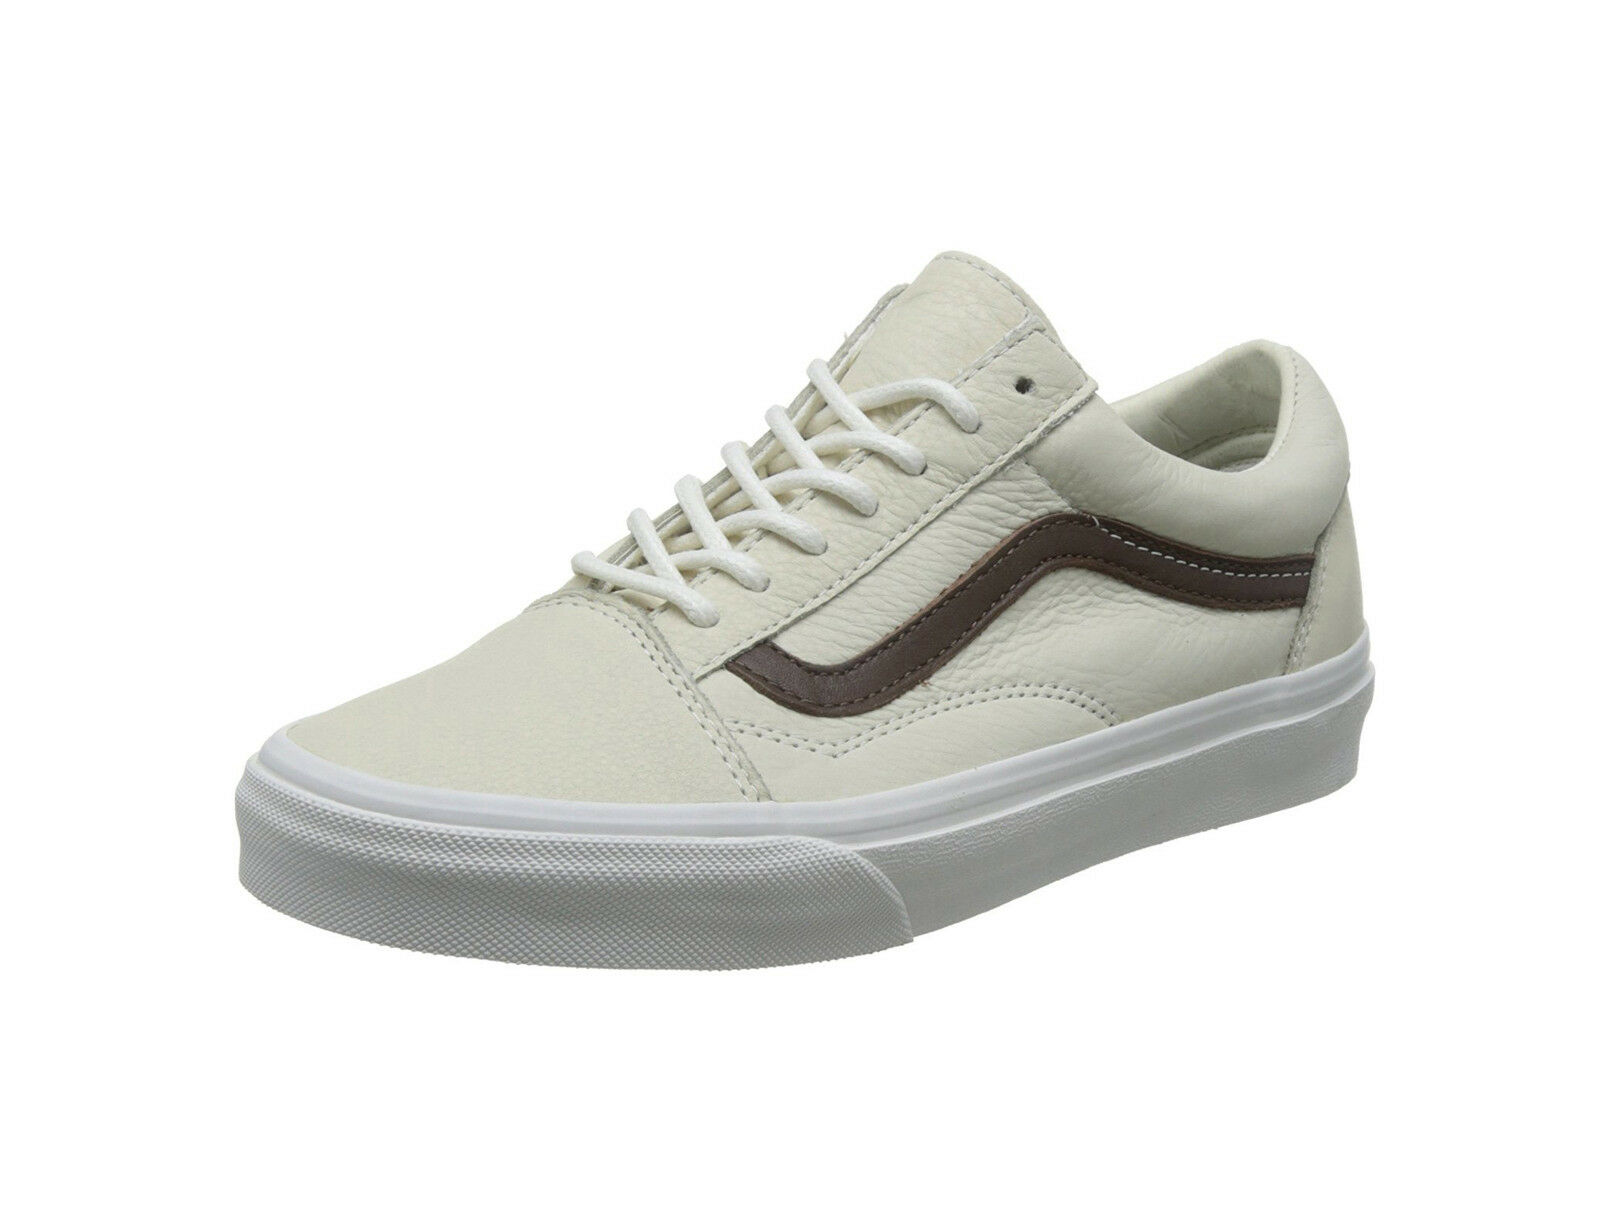 Vans Homme Femme Unisex Chaussures Old Skool (Leather) blanc de blanc potting soil